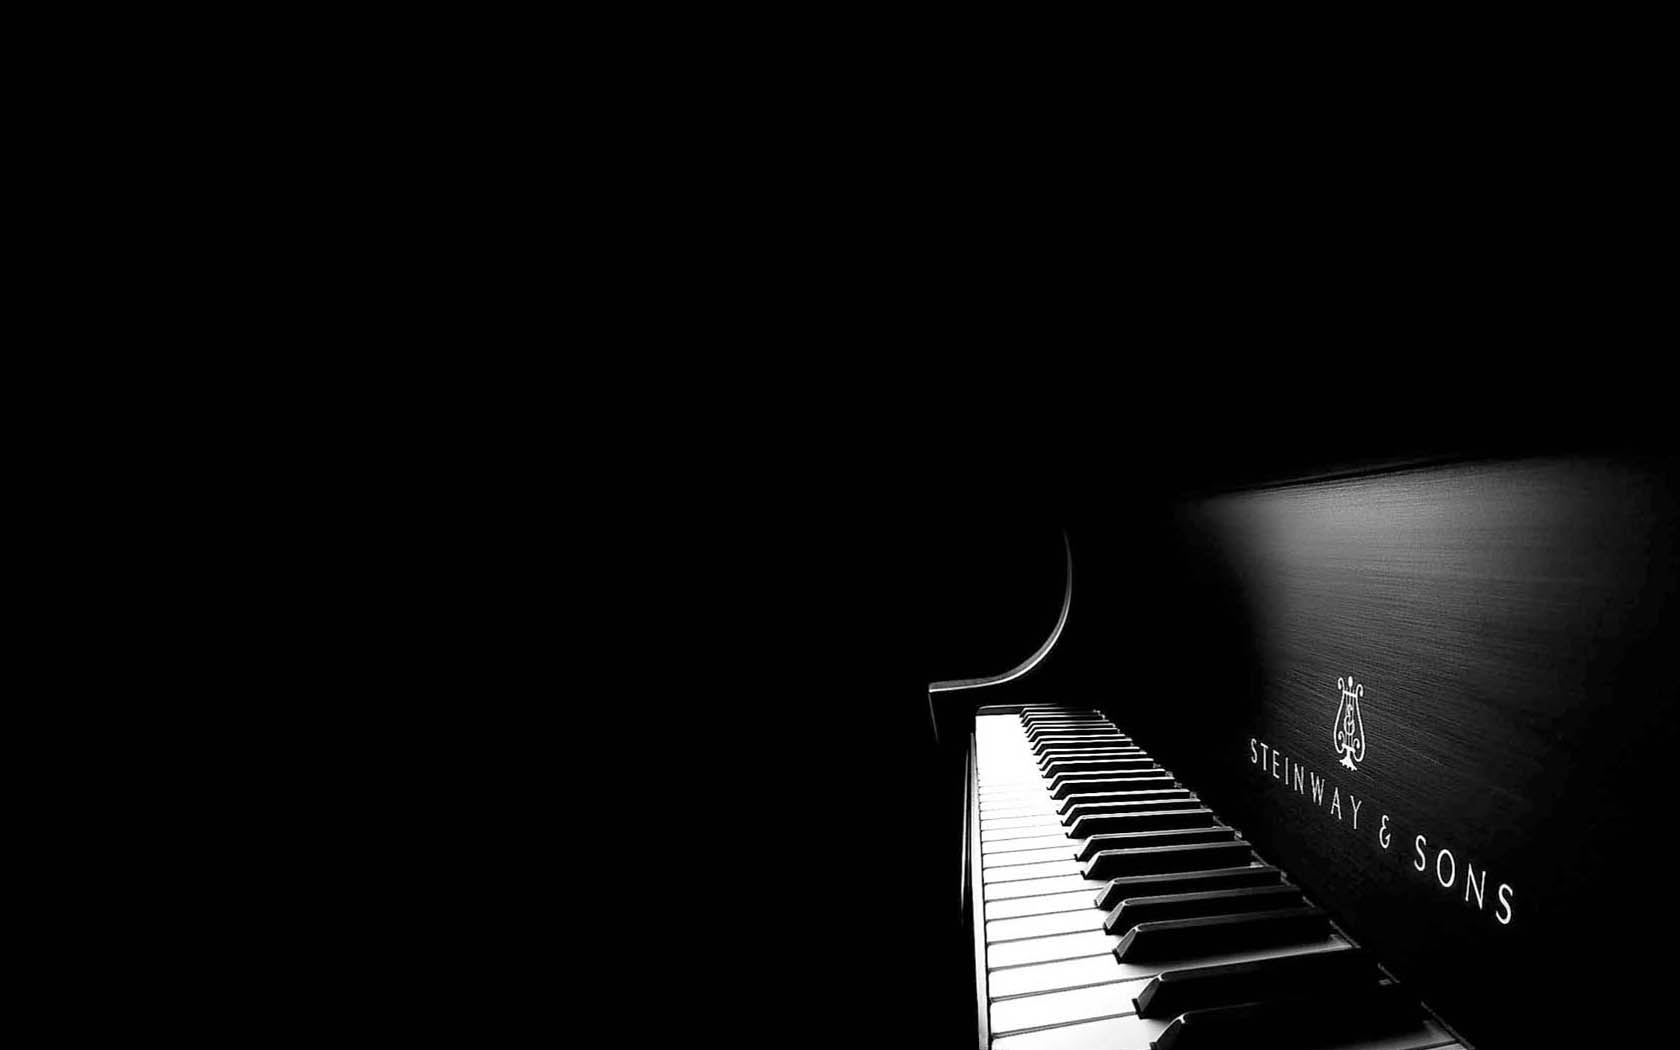 piano wallpaper ndash free - photo #25